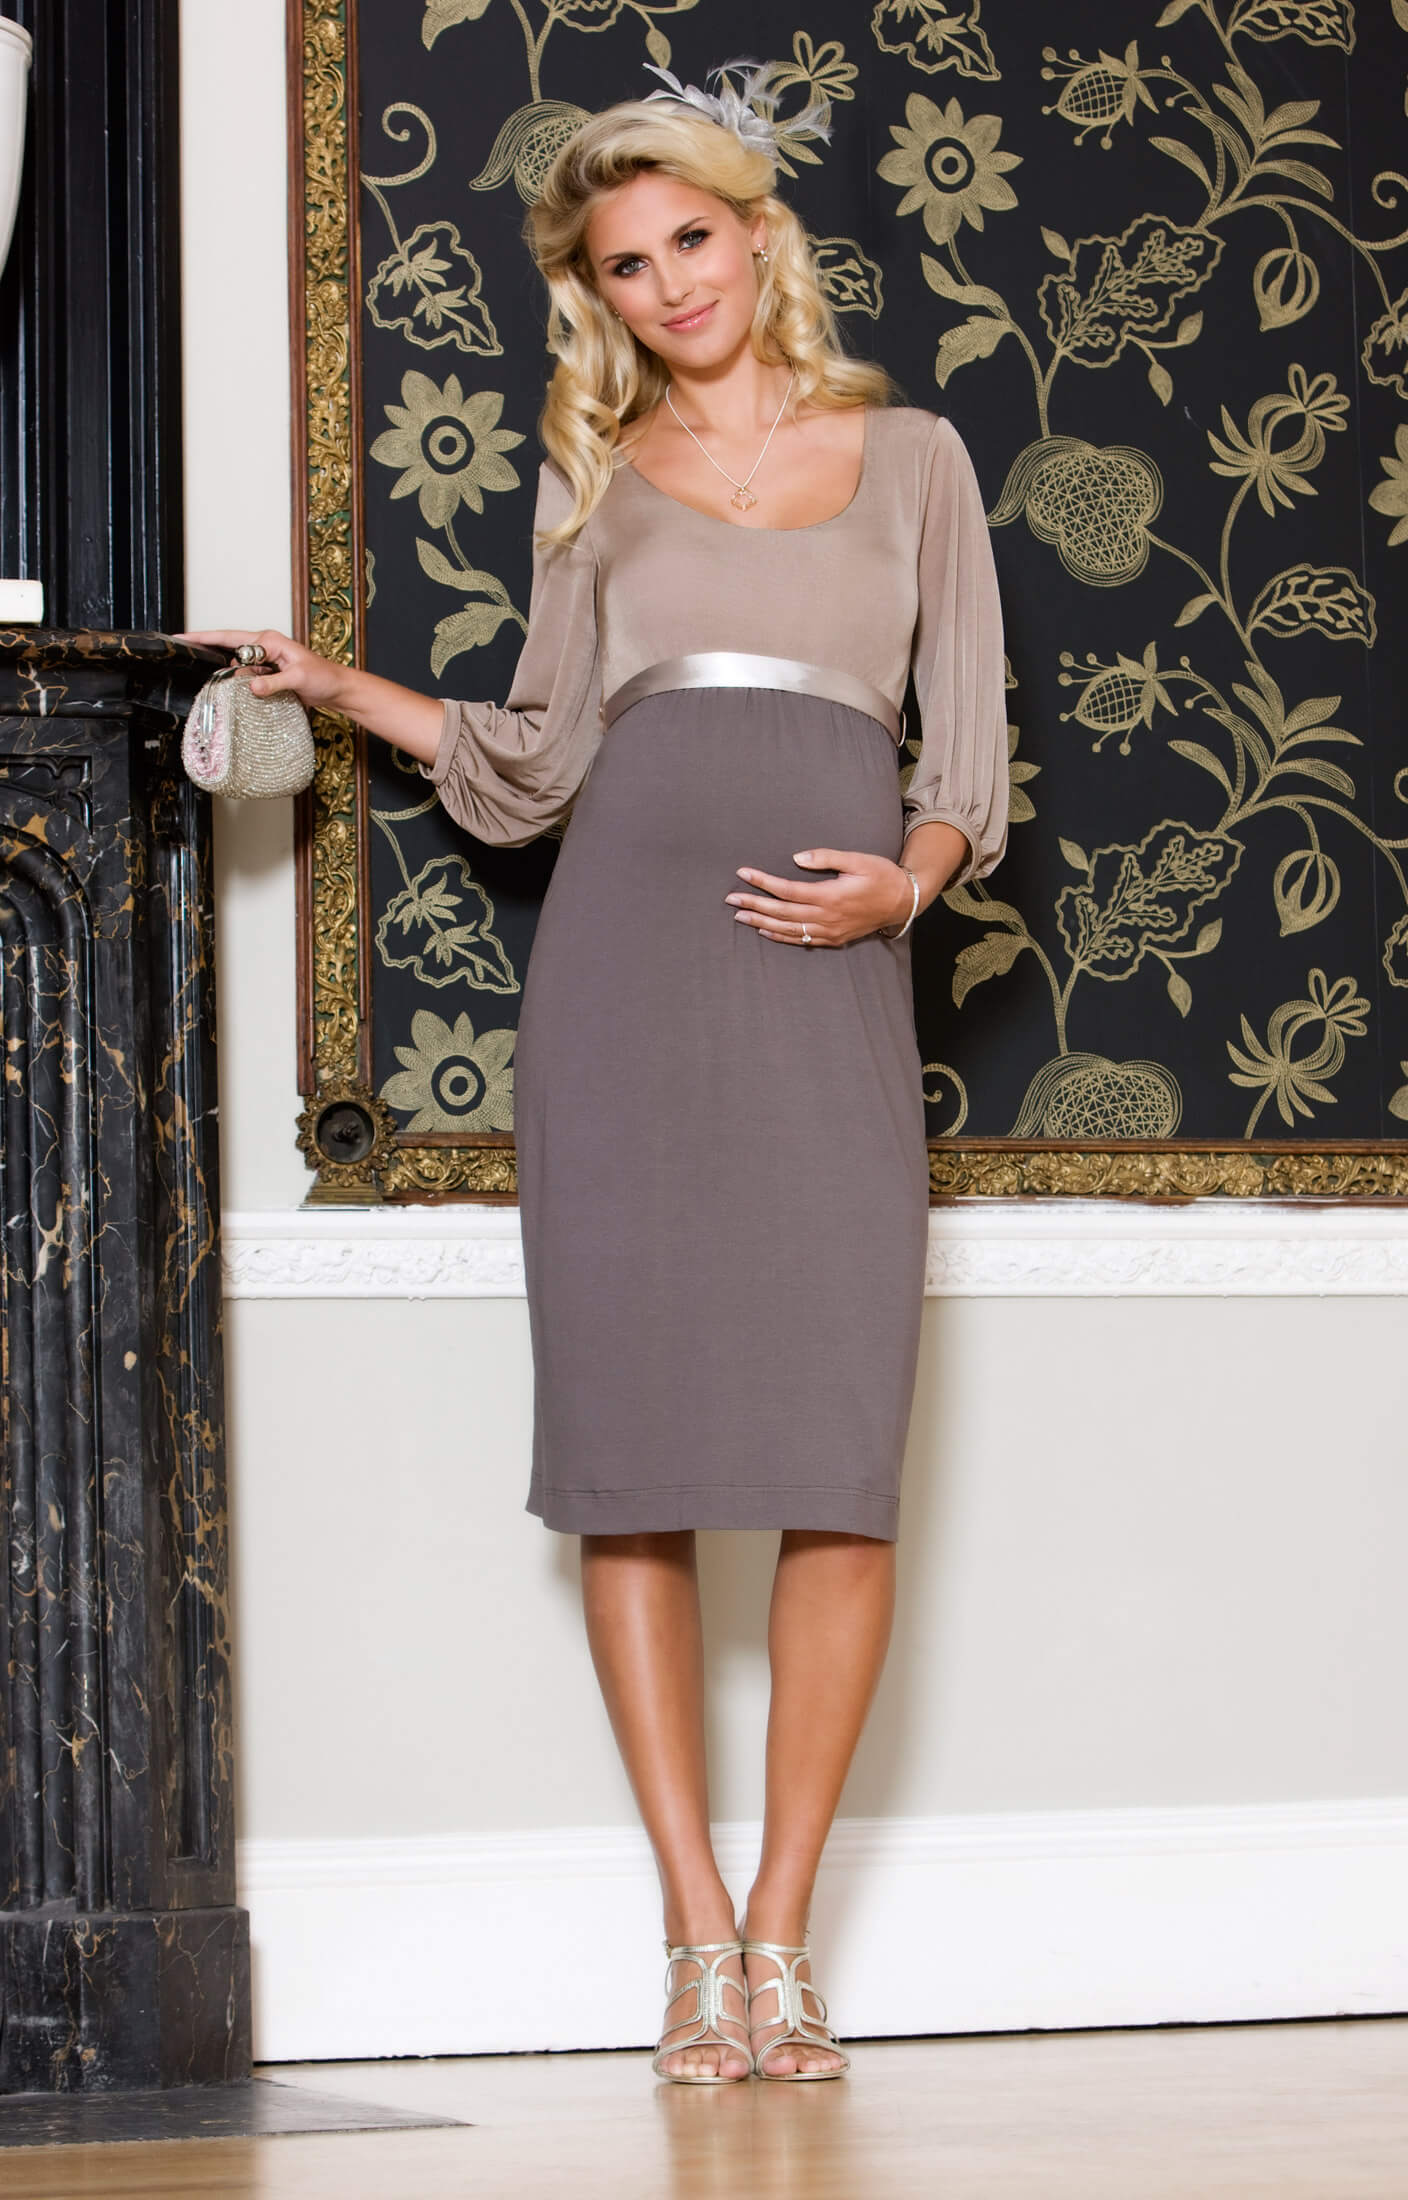 Sienna maternity dress dusk maternity wedding dresses evening sienna maternity dress dusk by tiffany rose ombrellifo Images